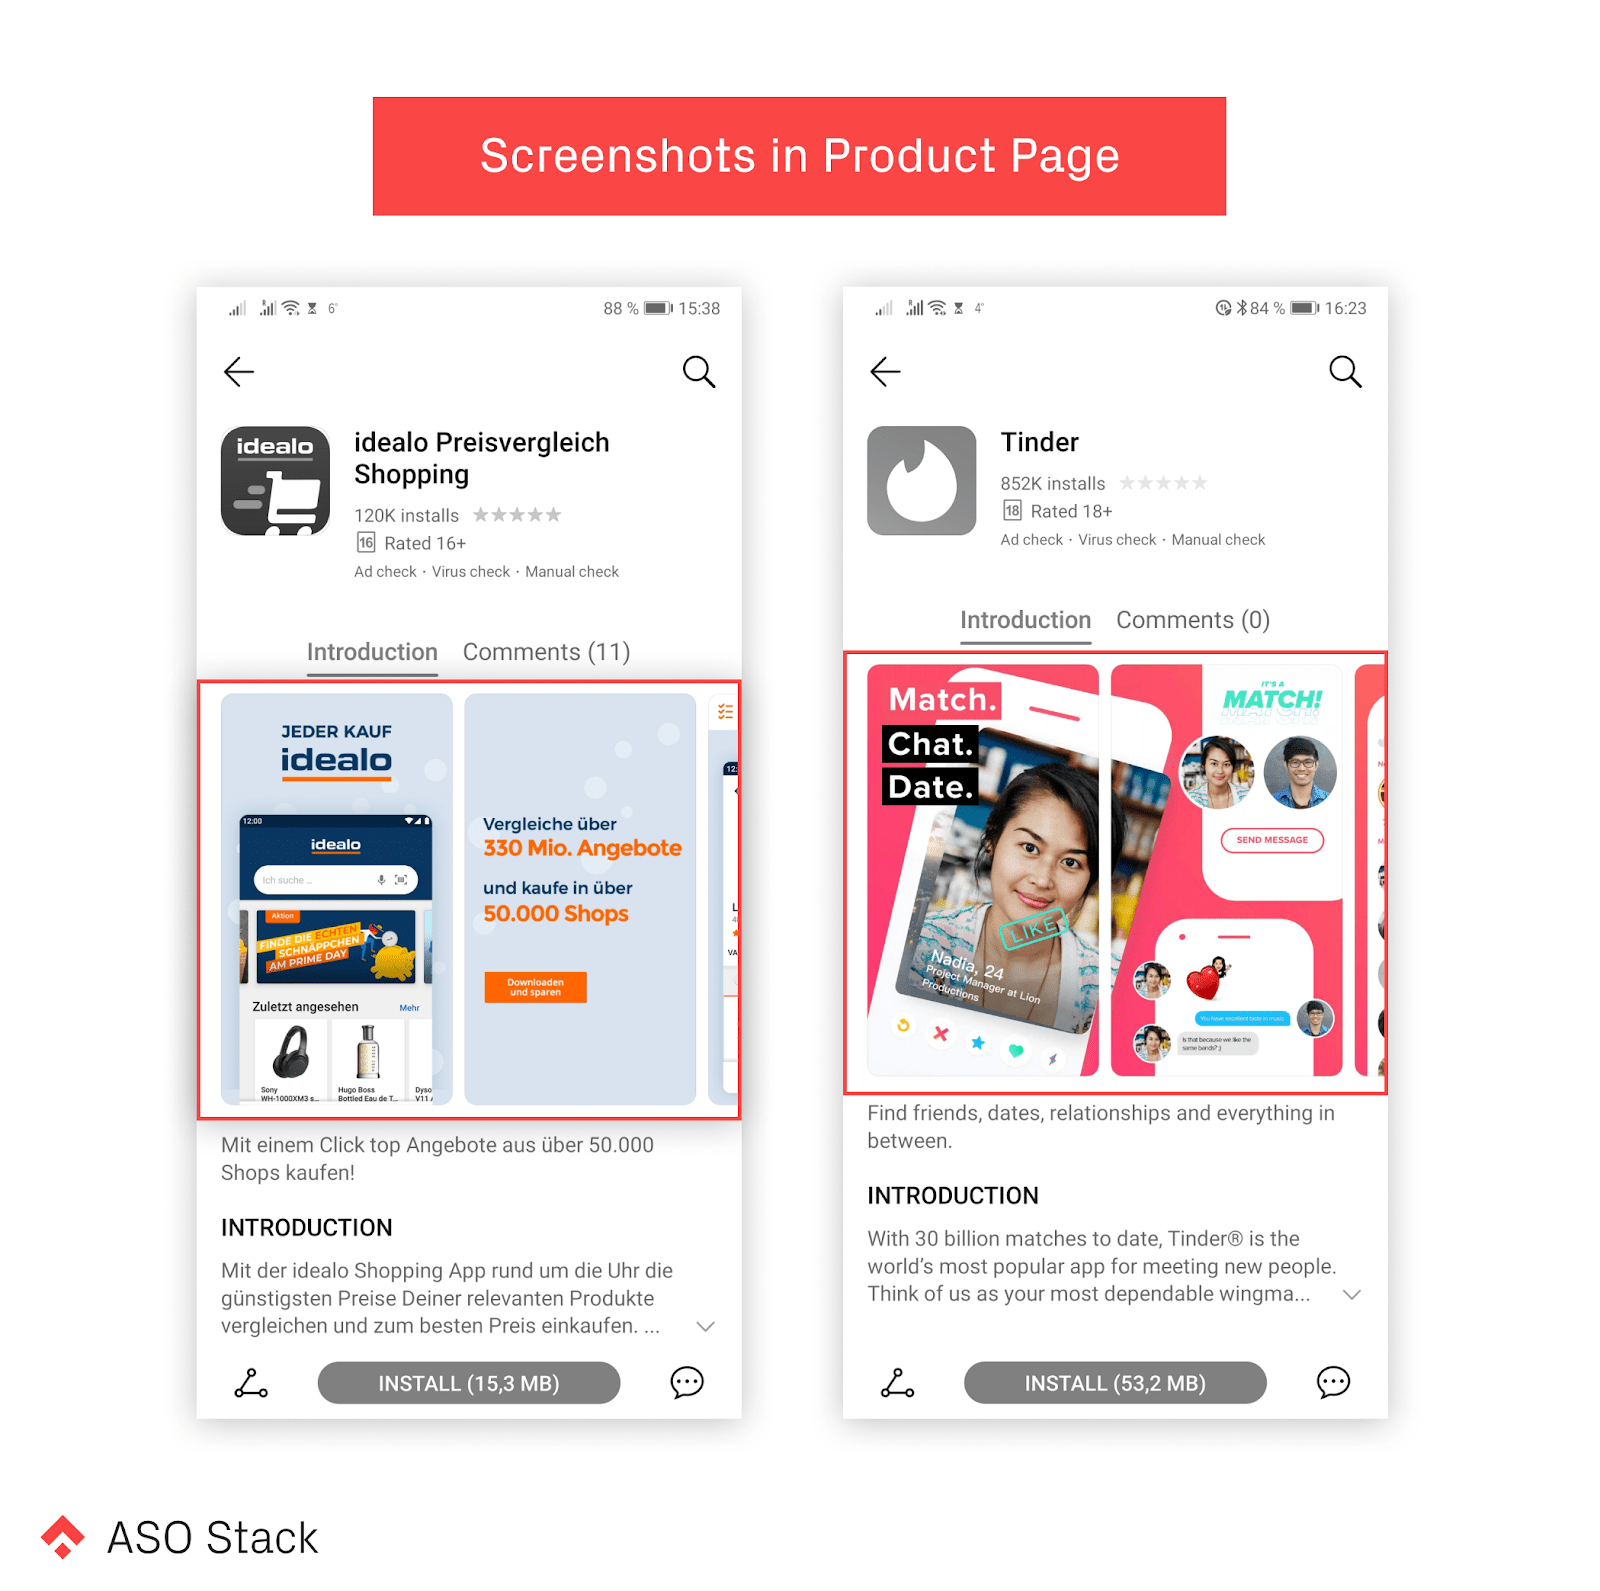 screenshots in product page